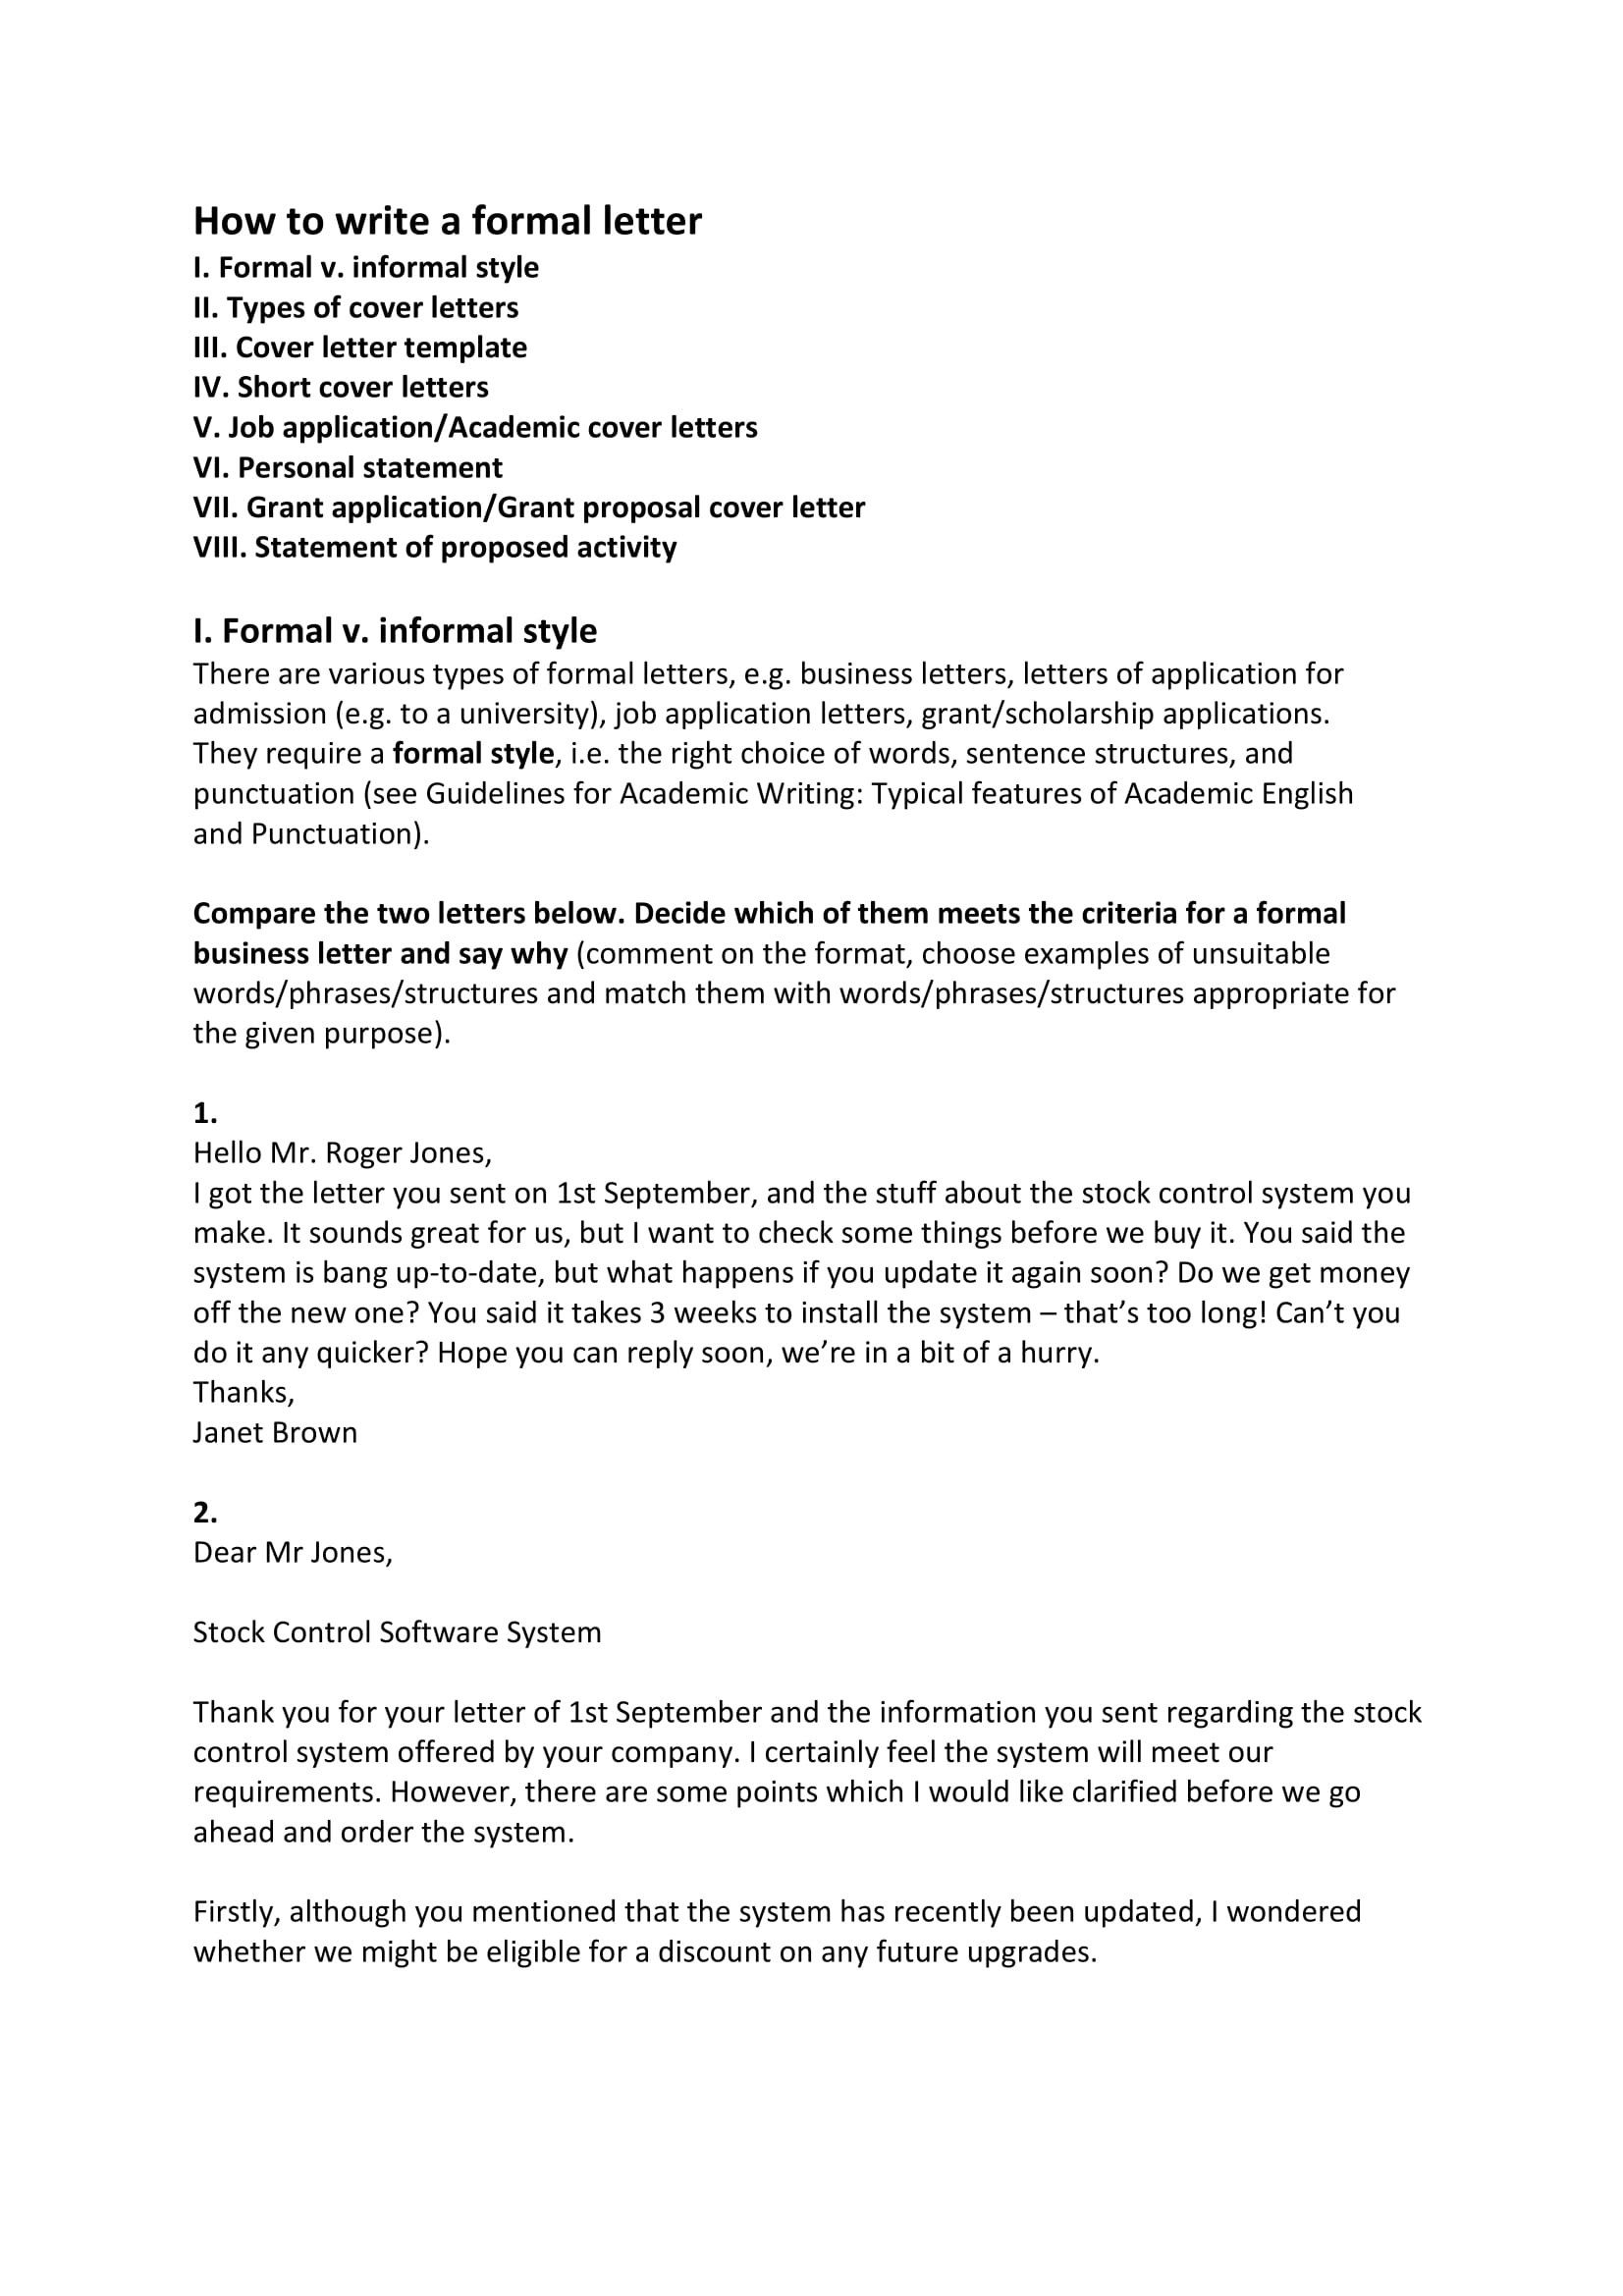 Informal Busines Letter Example In 2020 Template Formal Linguistic Personal Statement